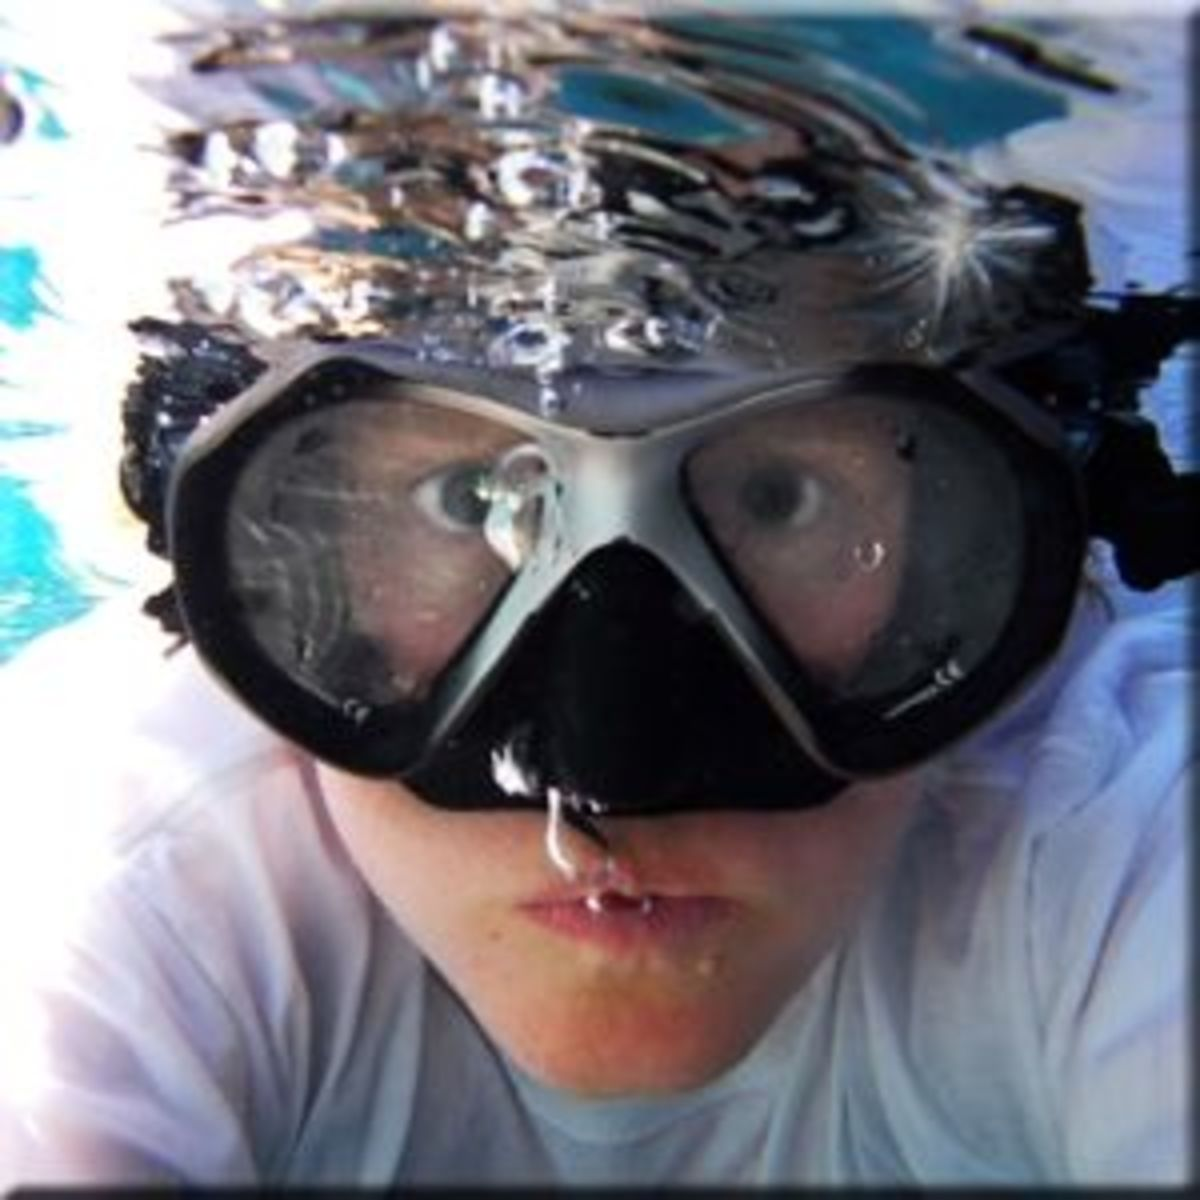 I made this image in our swimming pool using a Nikon Coolpix AW100 waterproof camera held in front of me. But you don't need an underwater camera to take a shot like this. For less than $20, you can buy a waterproof camera bag (see tools section belo